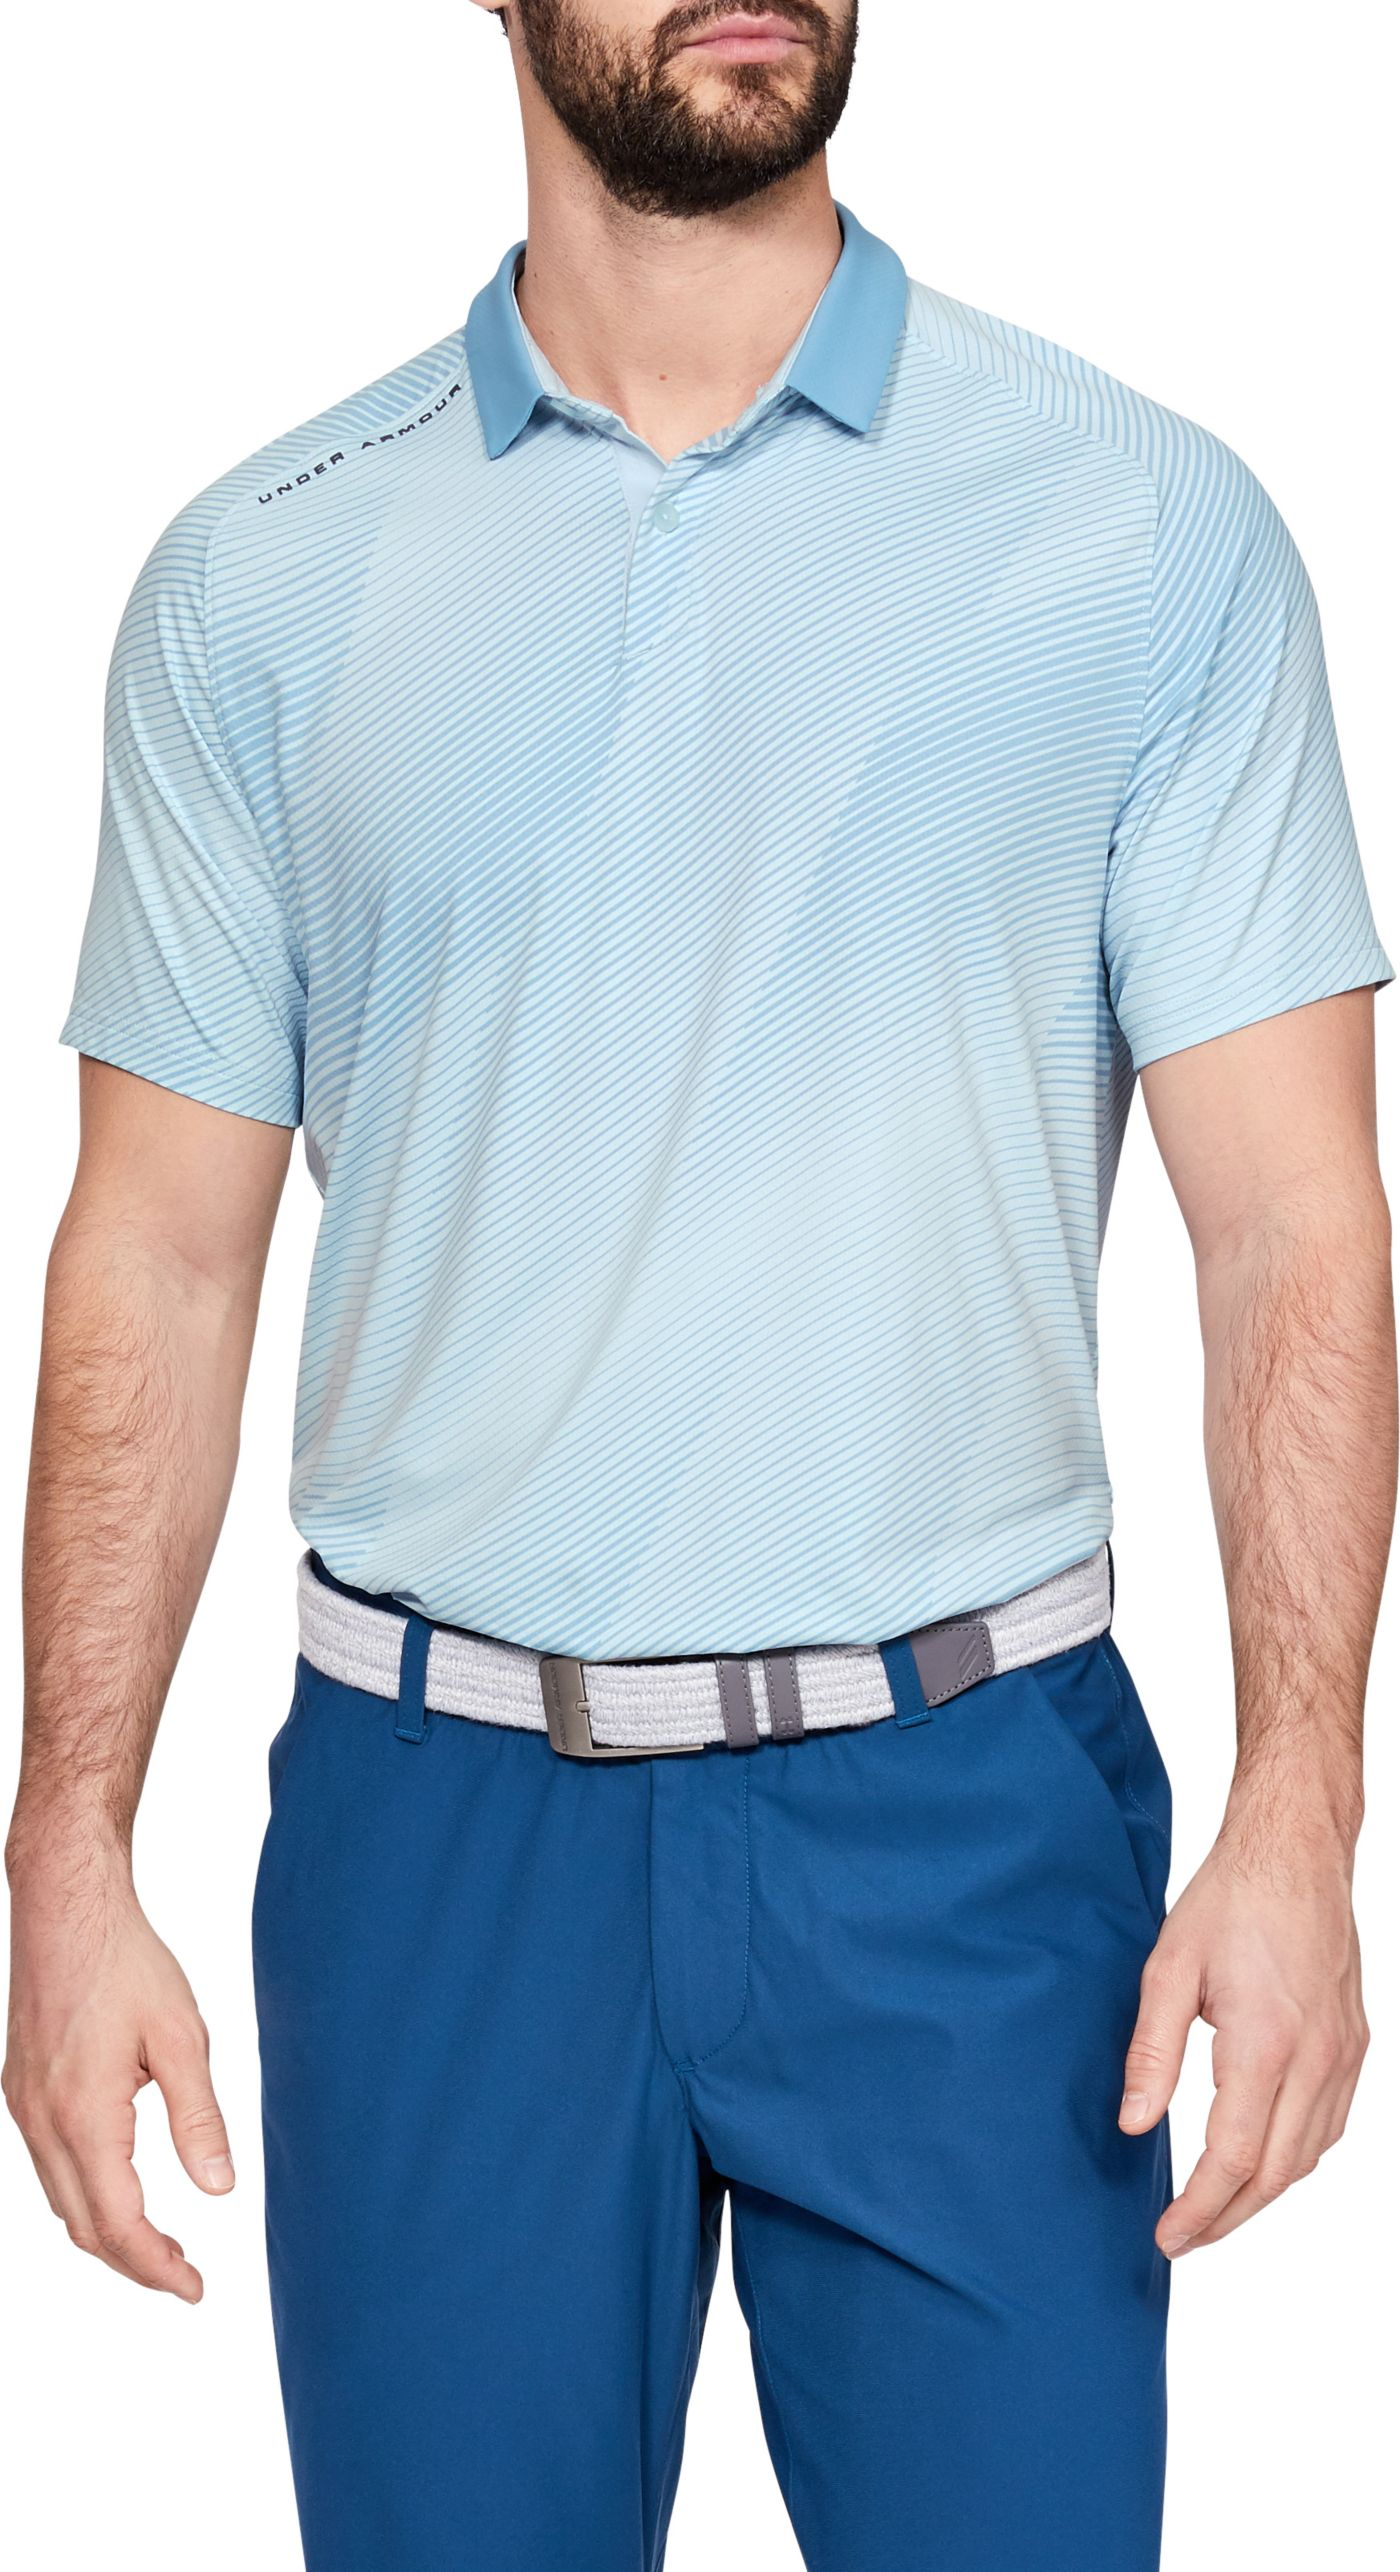 Under Armour Men's Iso-Chill Drop Zone Golf Polo